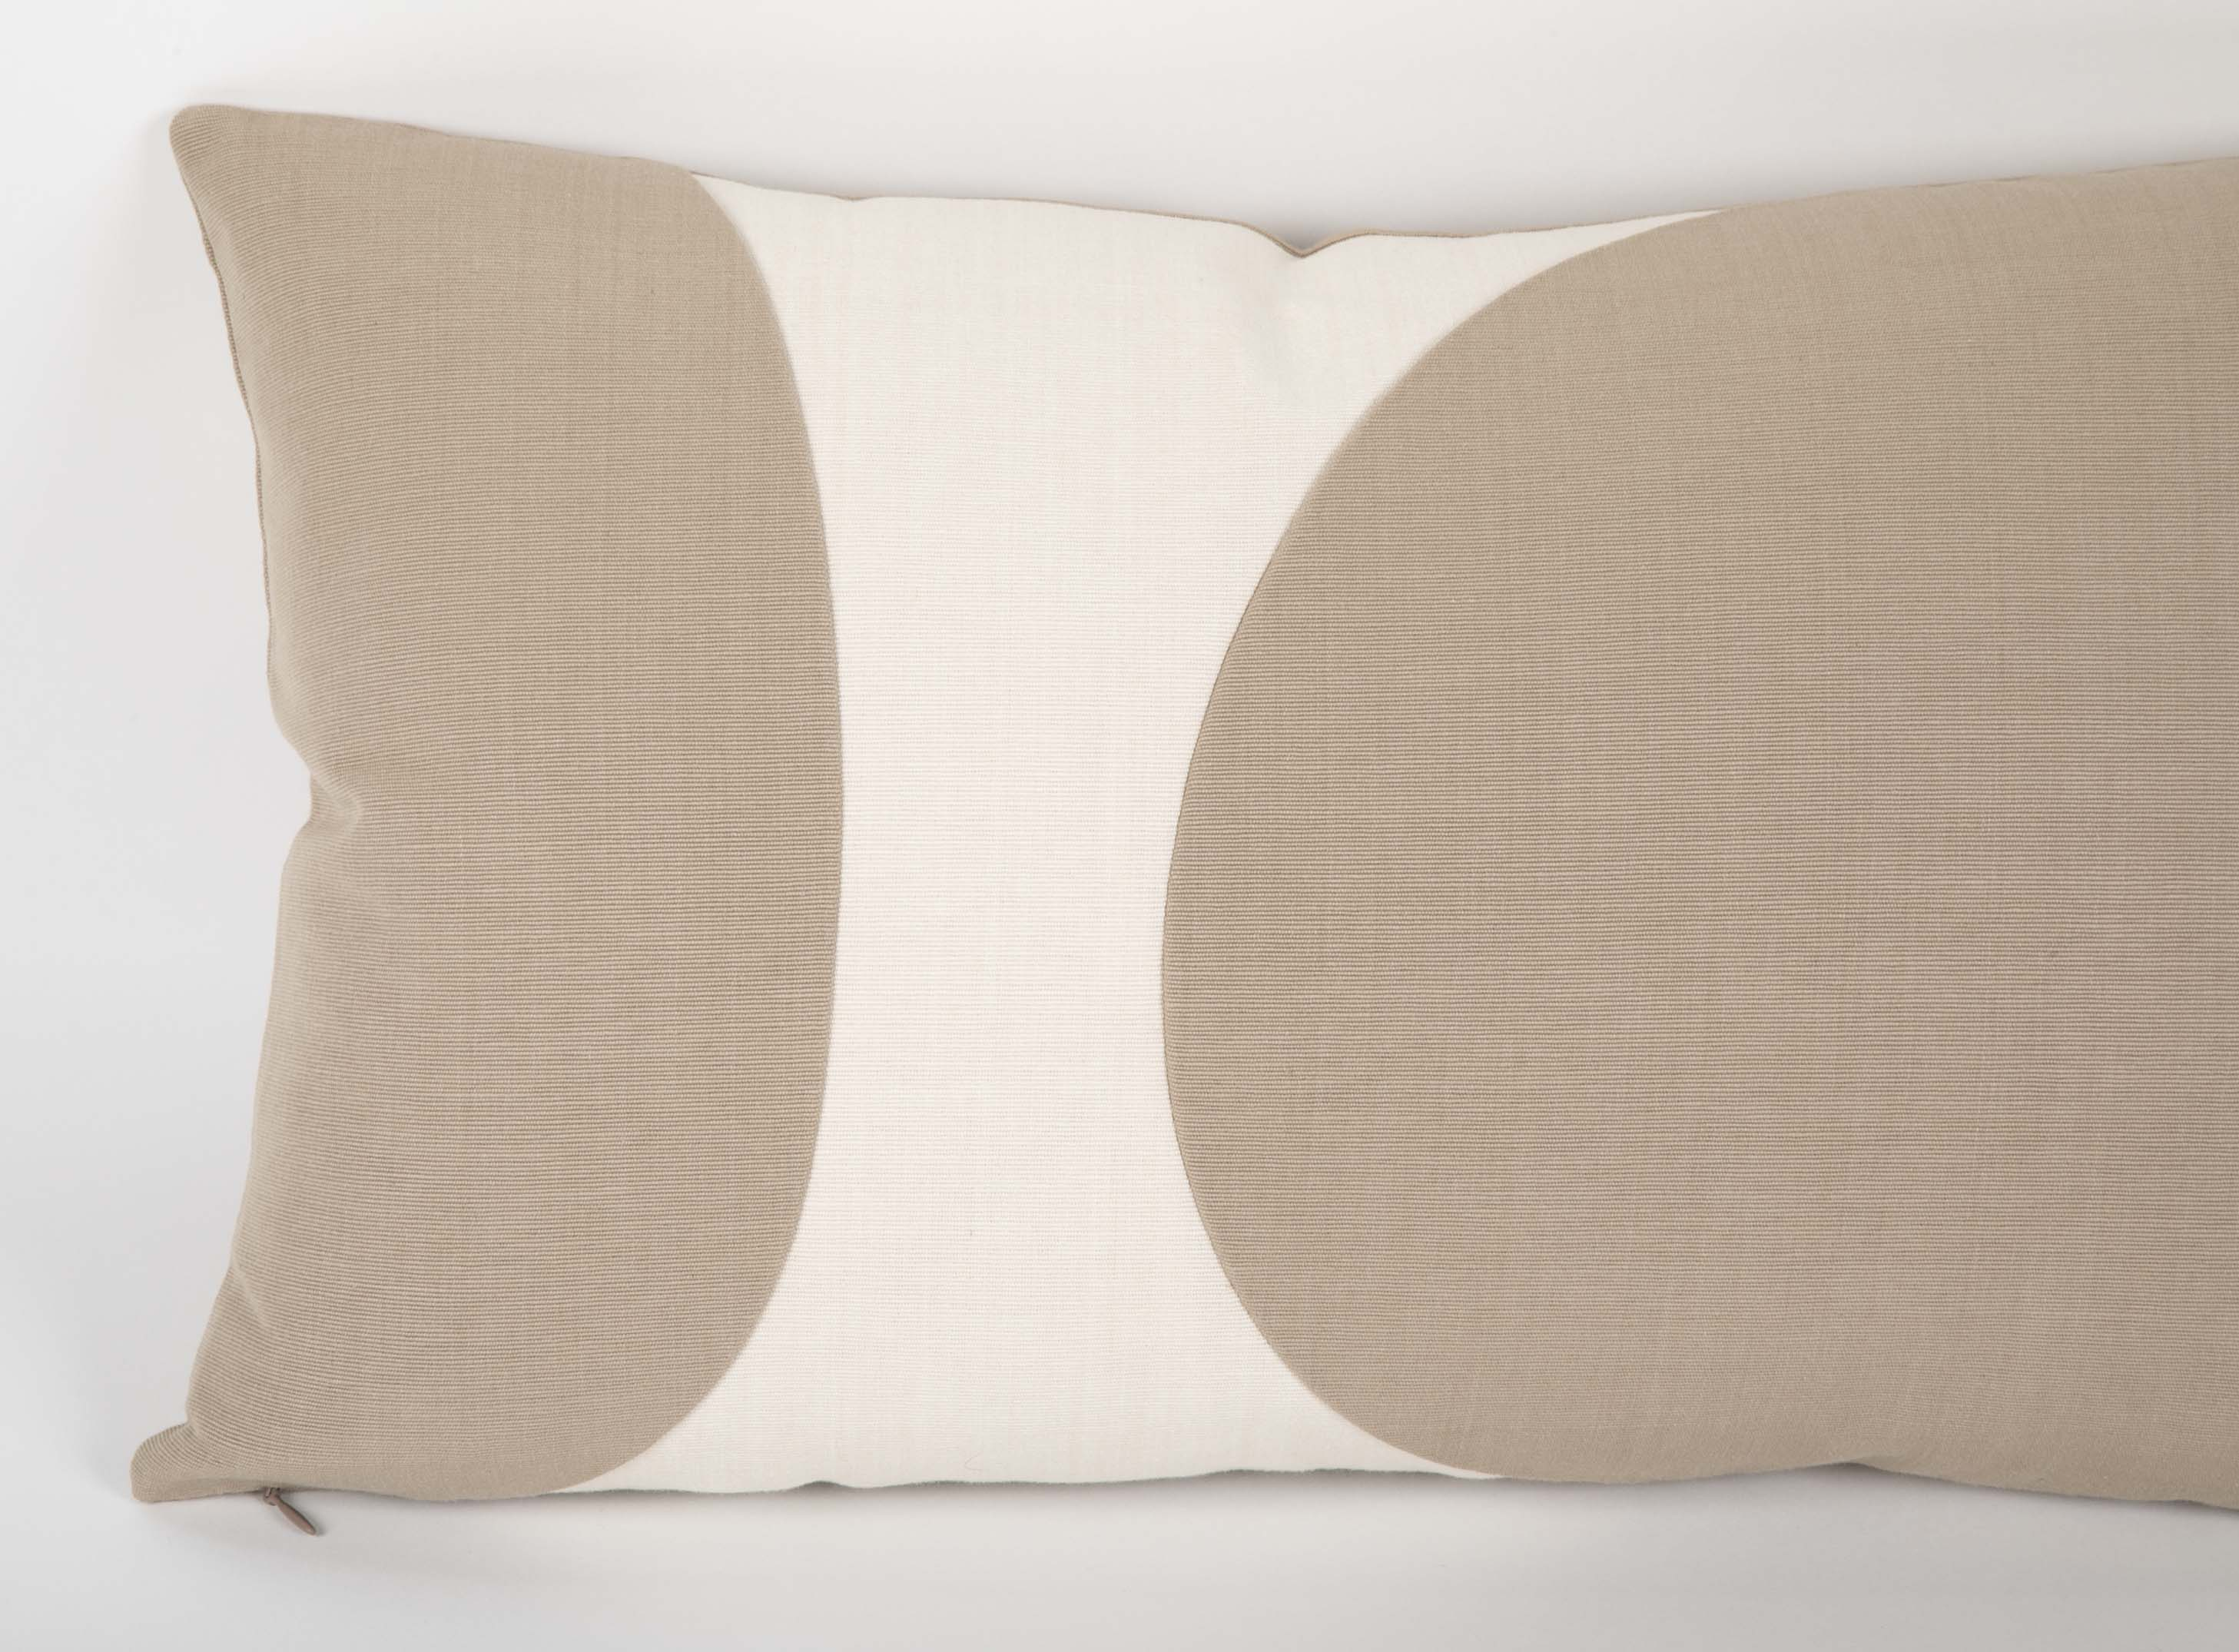 A Haute Couture Minimalist Pillow Designed and Handmade by Graph and Faraway